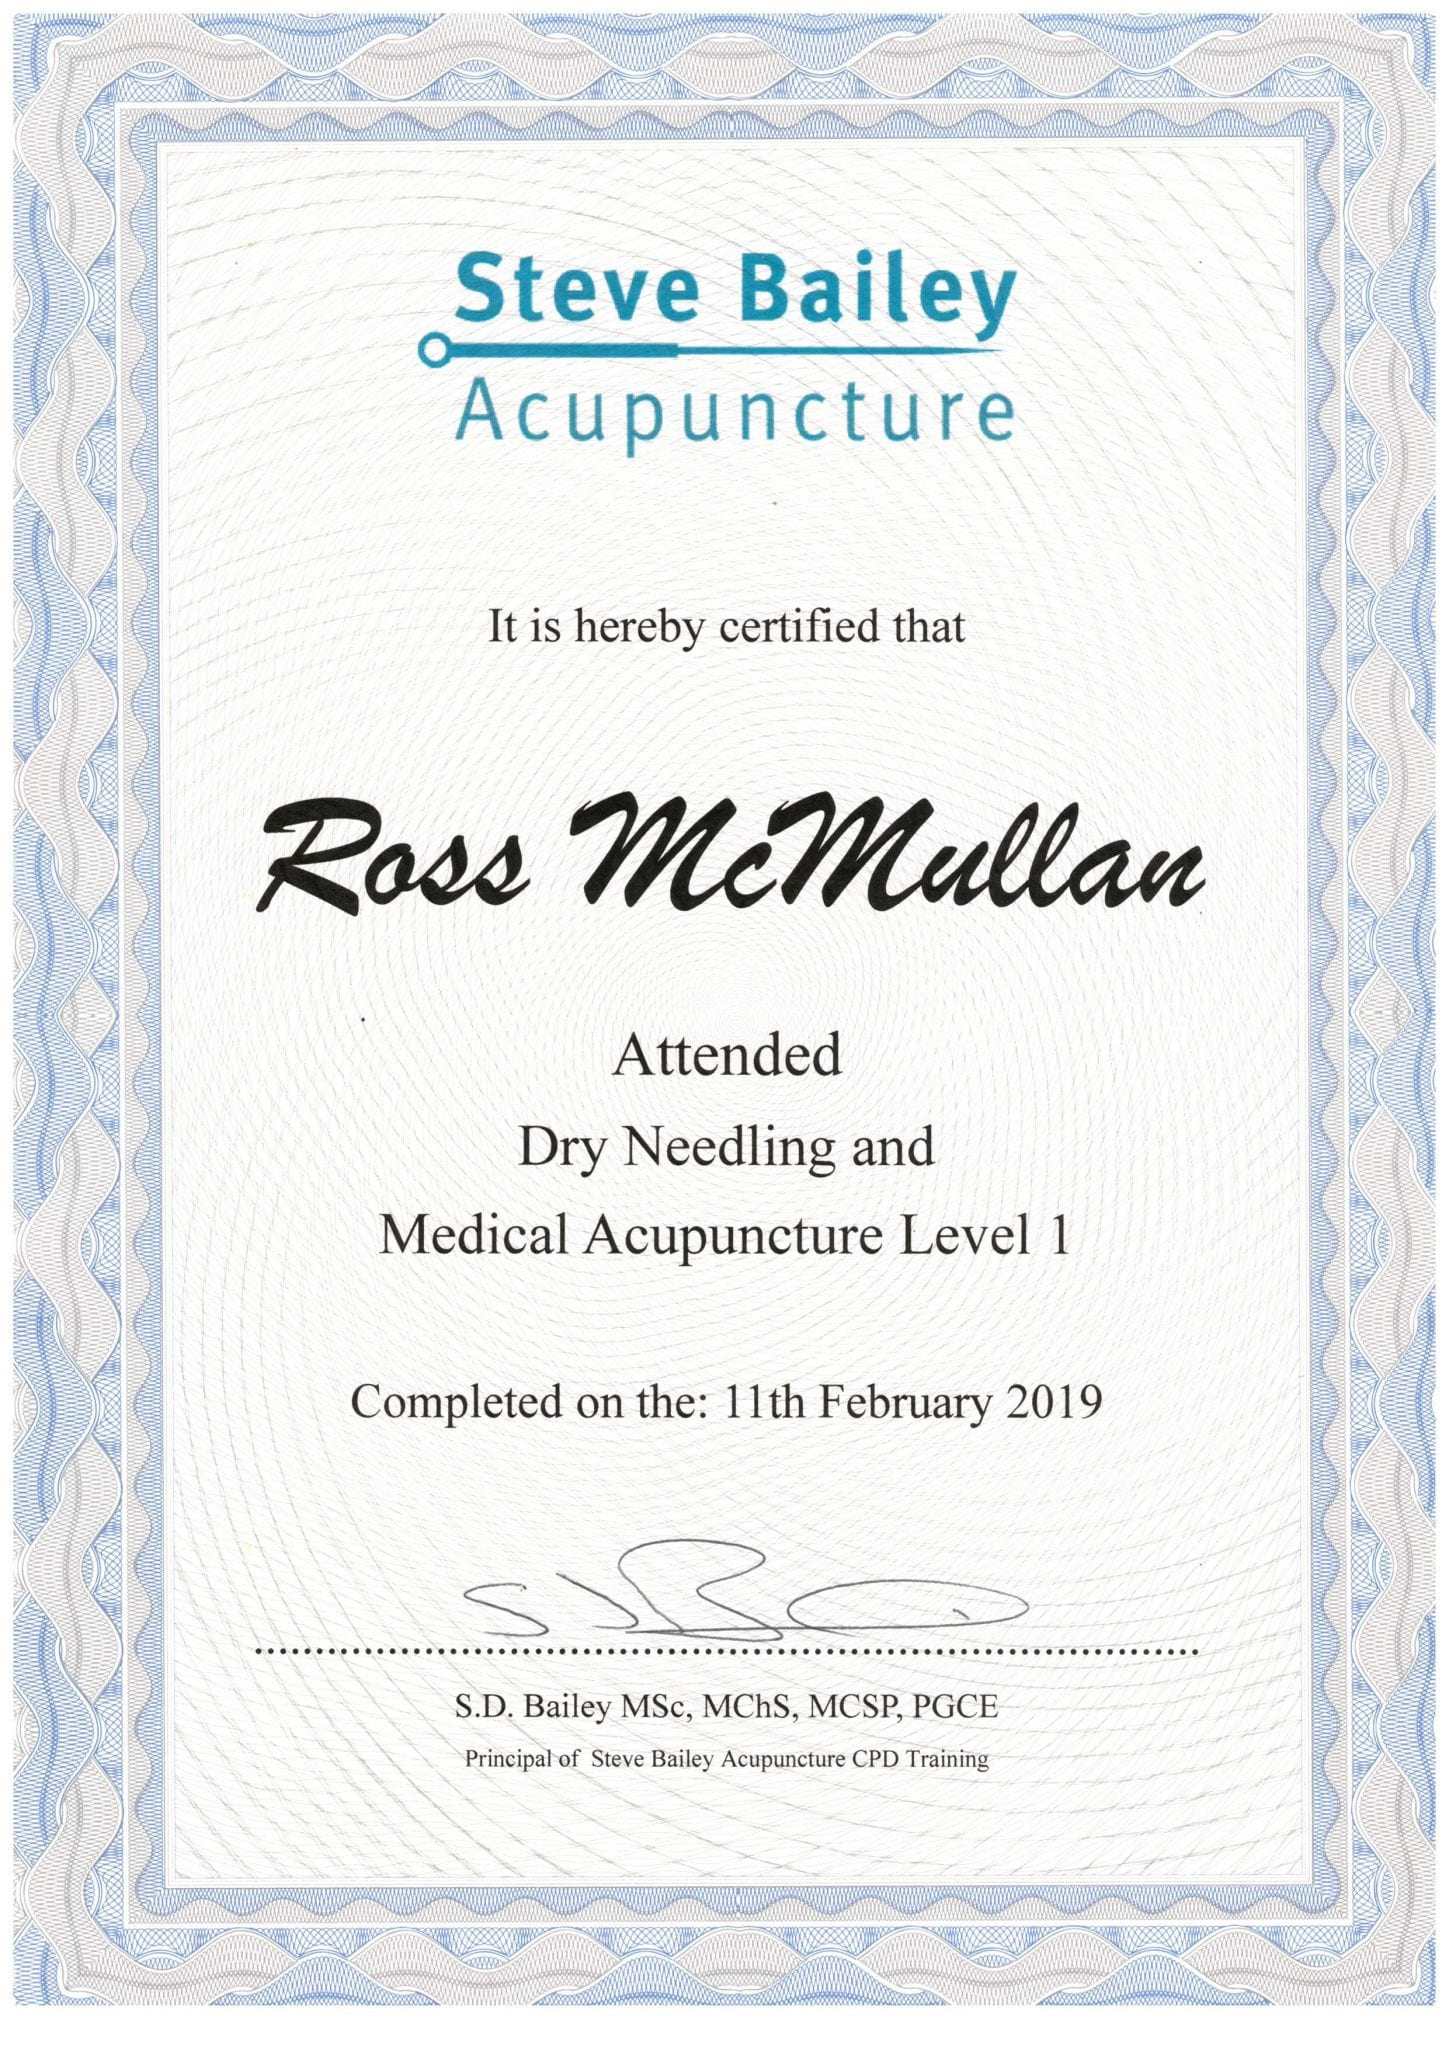 Dry Needling & Medical Acupuncture Level 1